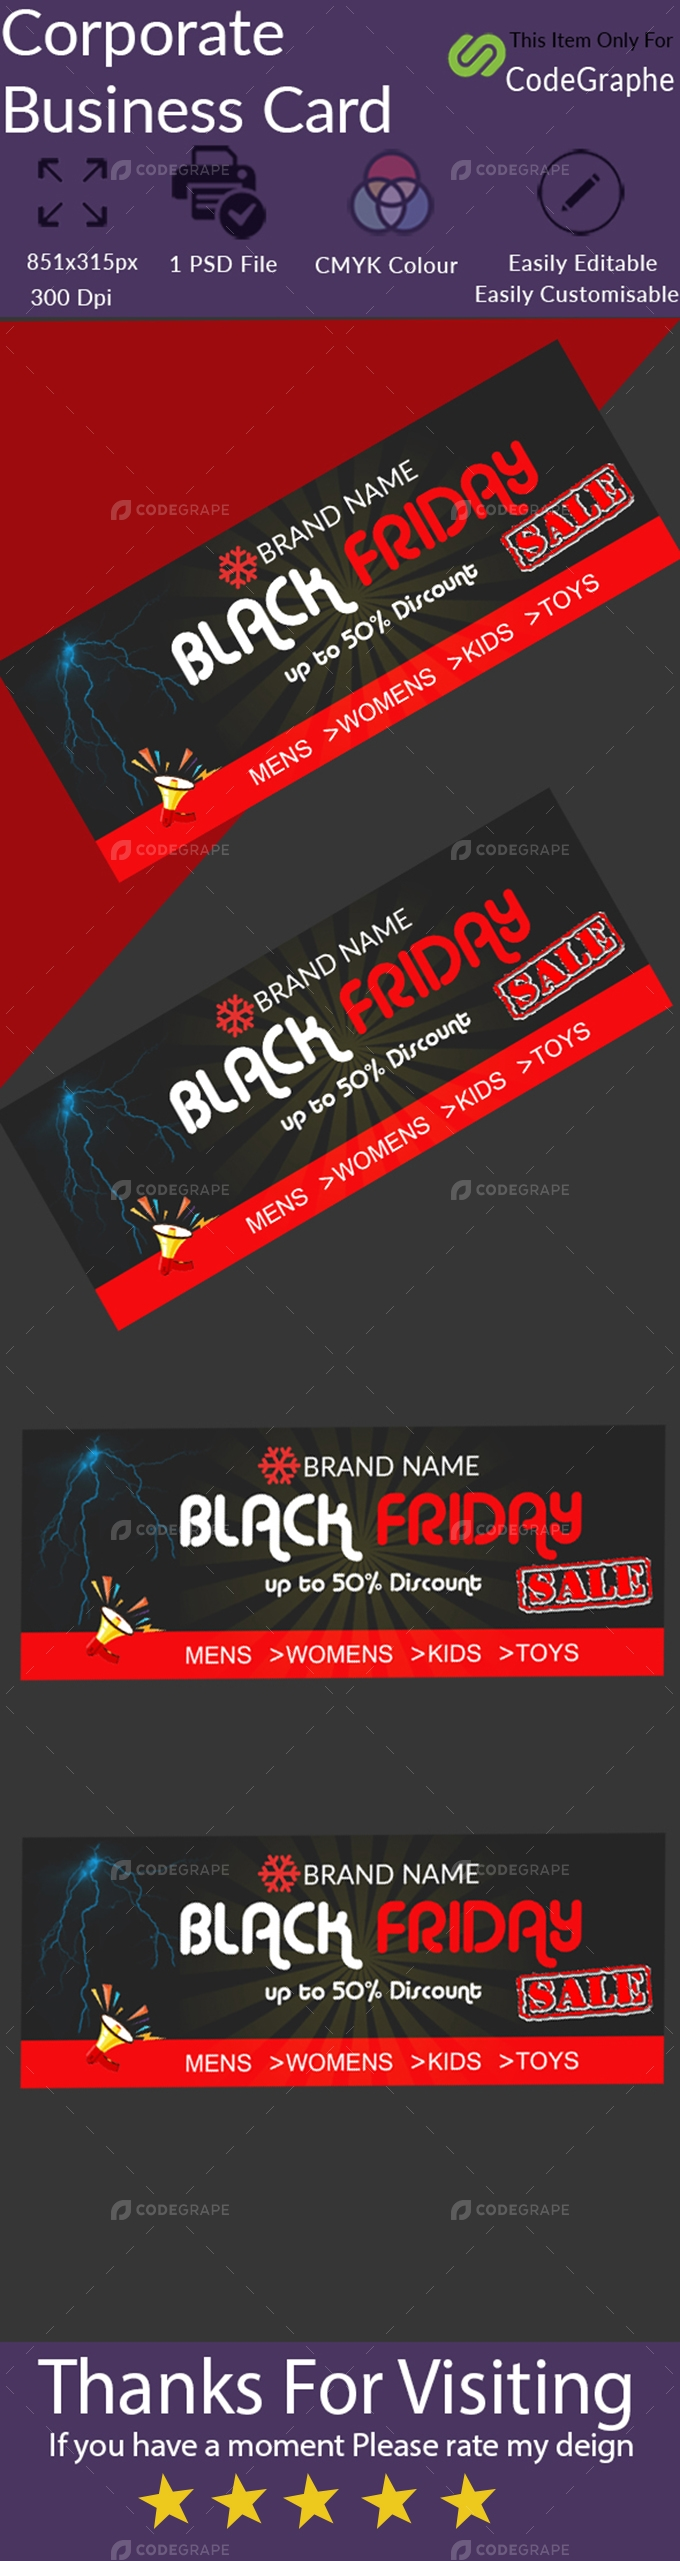 Black Friday Facebook Cover